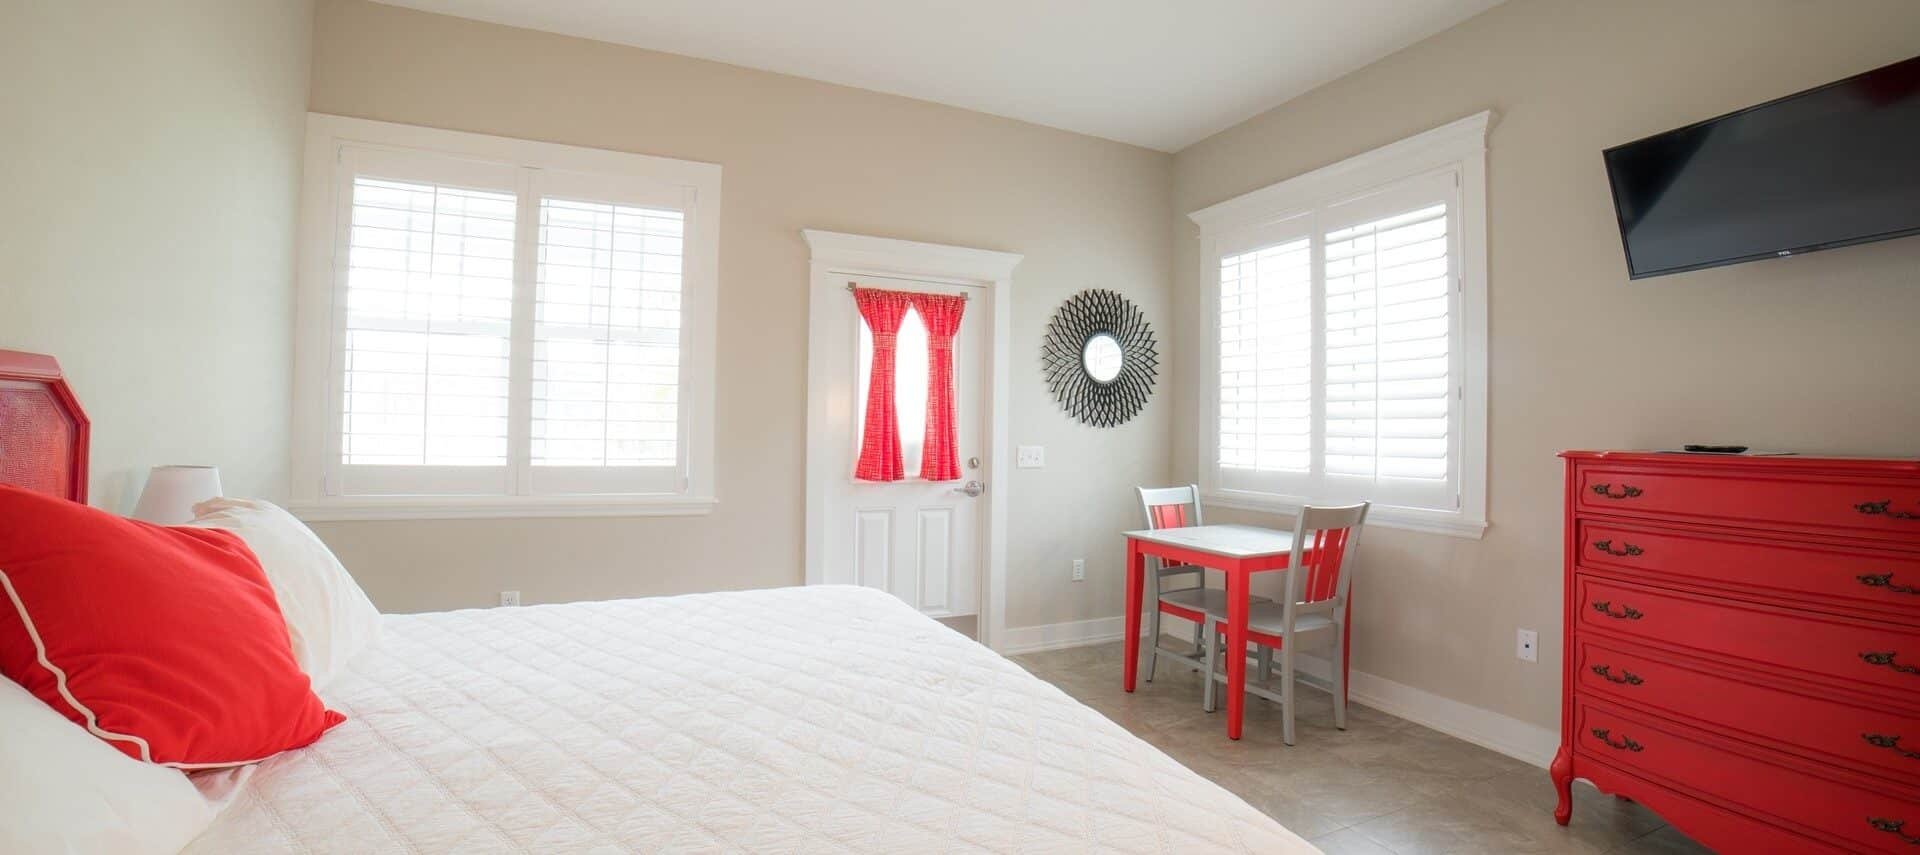 Guest room in white and beige with orangey-red accents and furnishings.